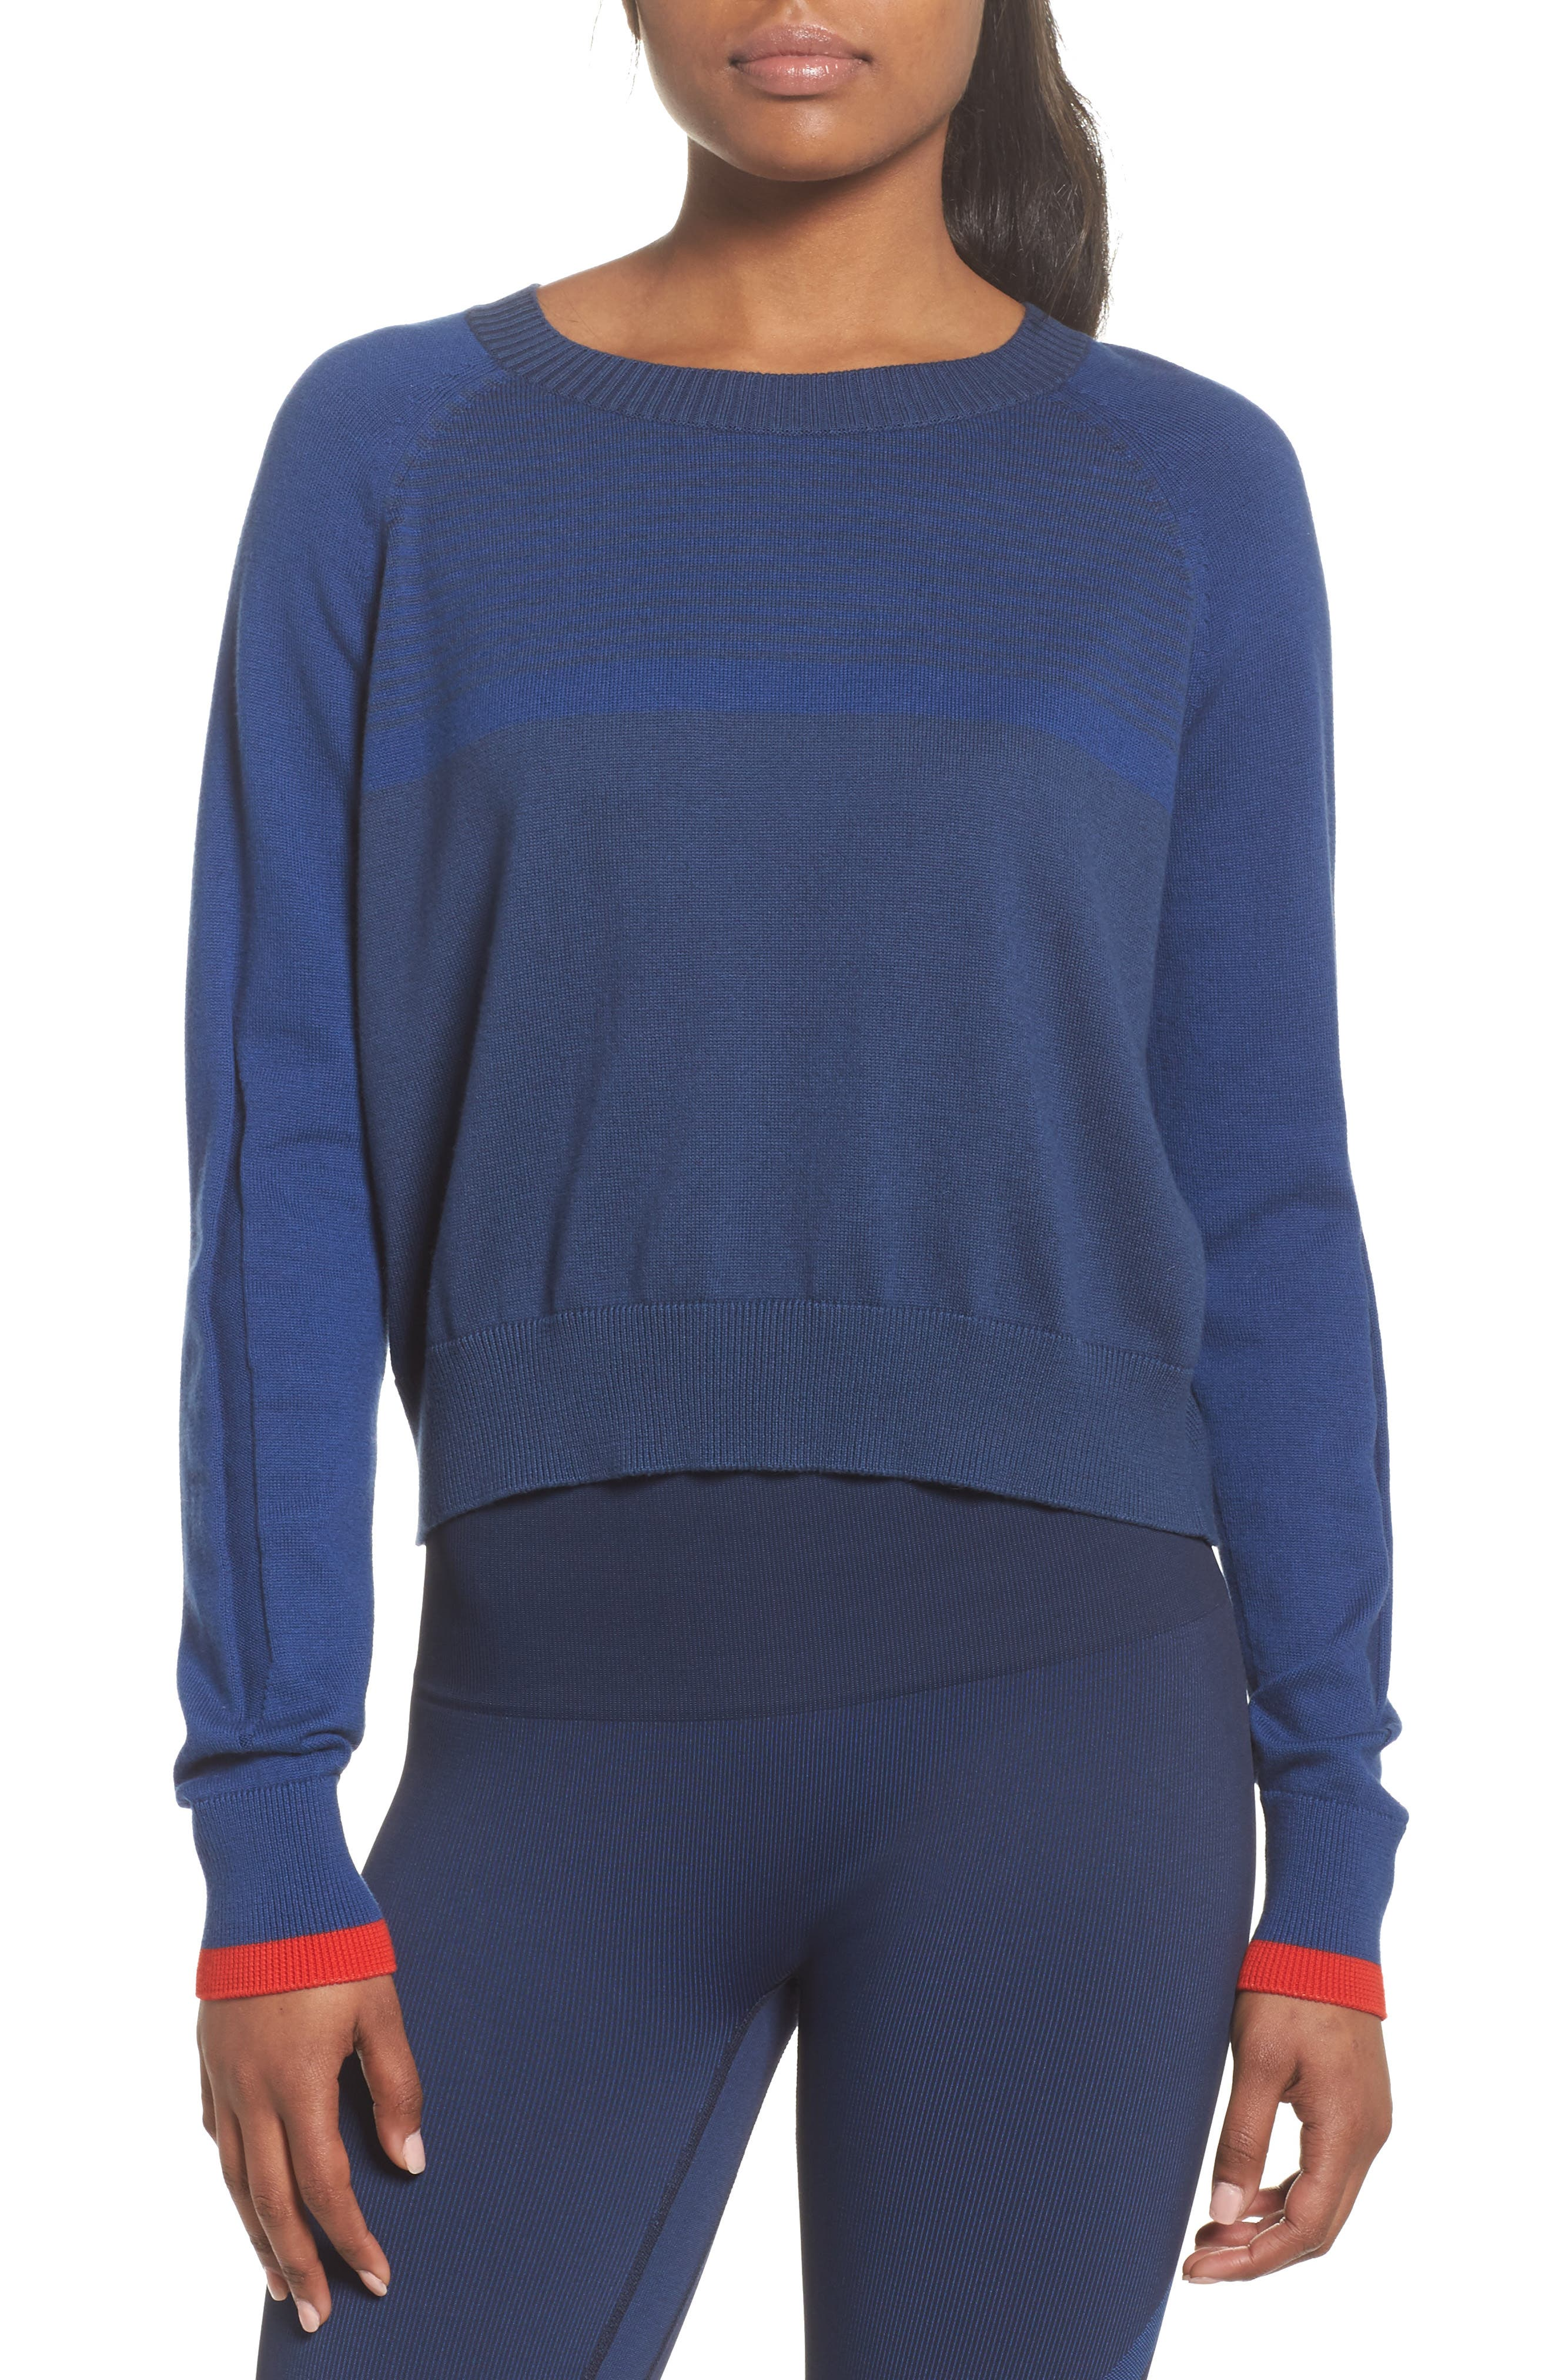 Prism Cropped Sweater,                             Main thumbnail 1, color,                             Blue